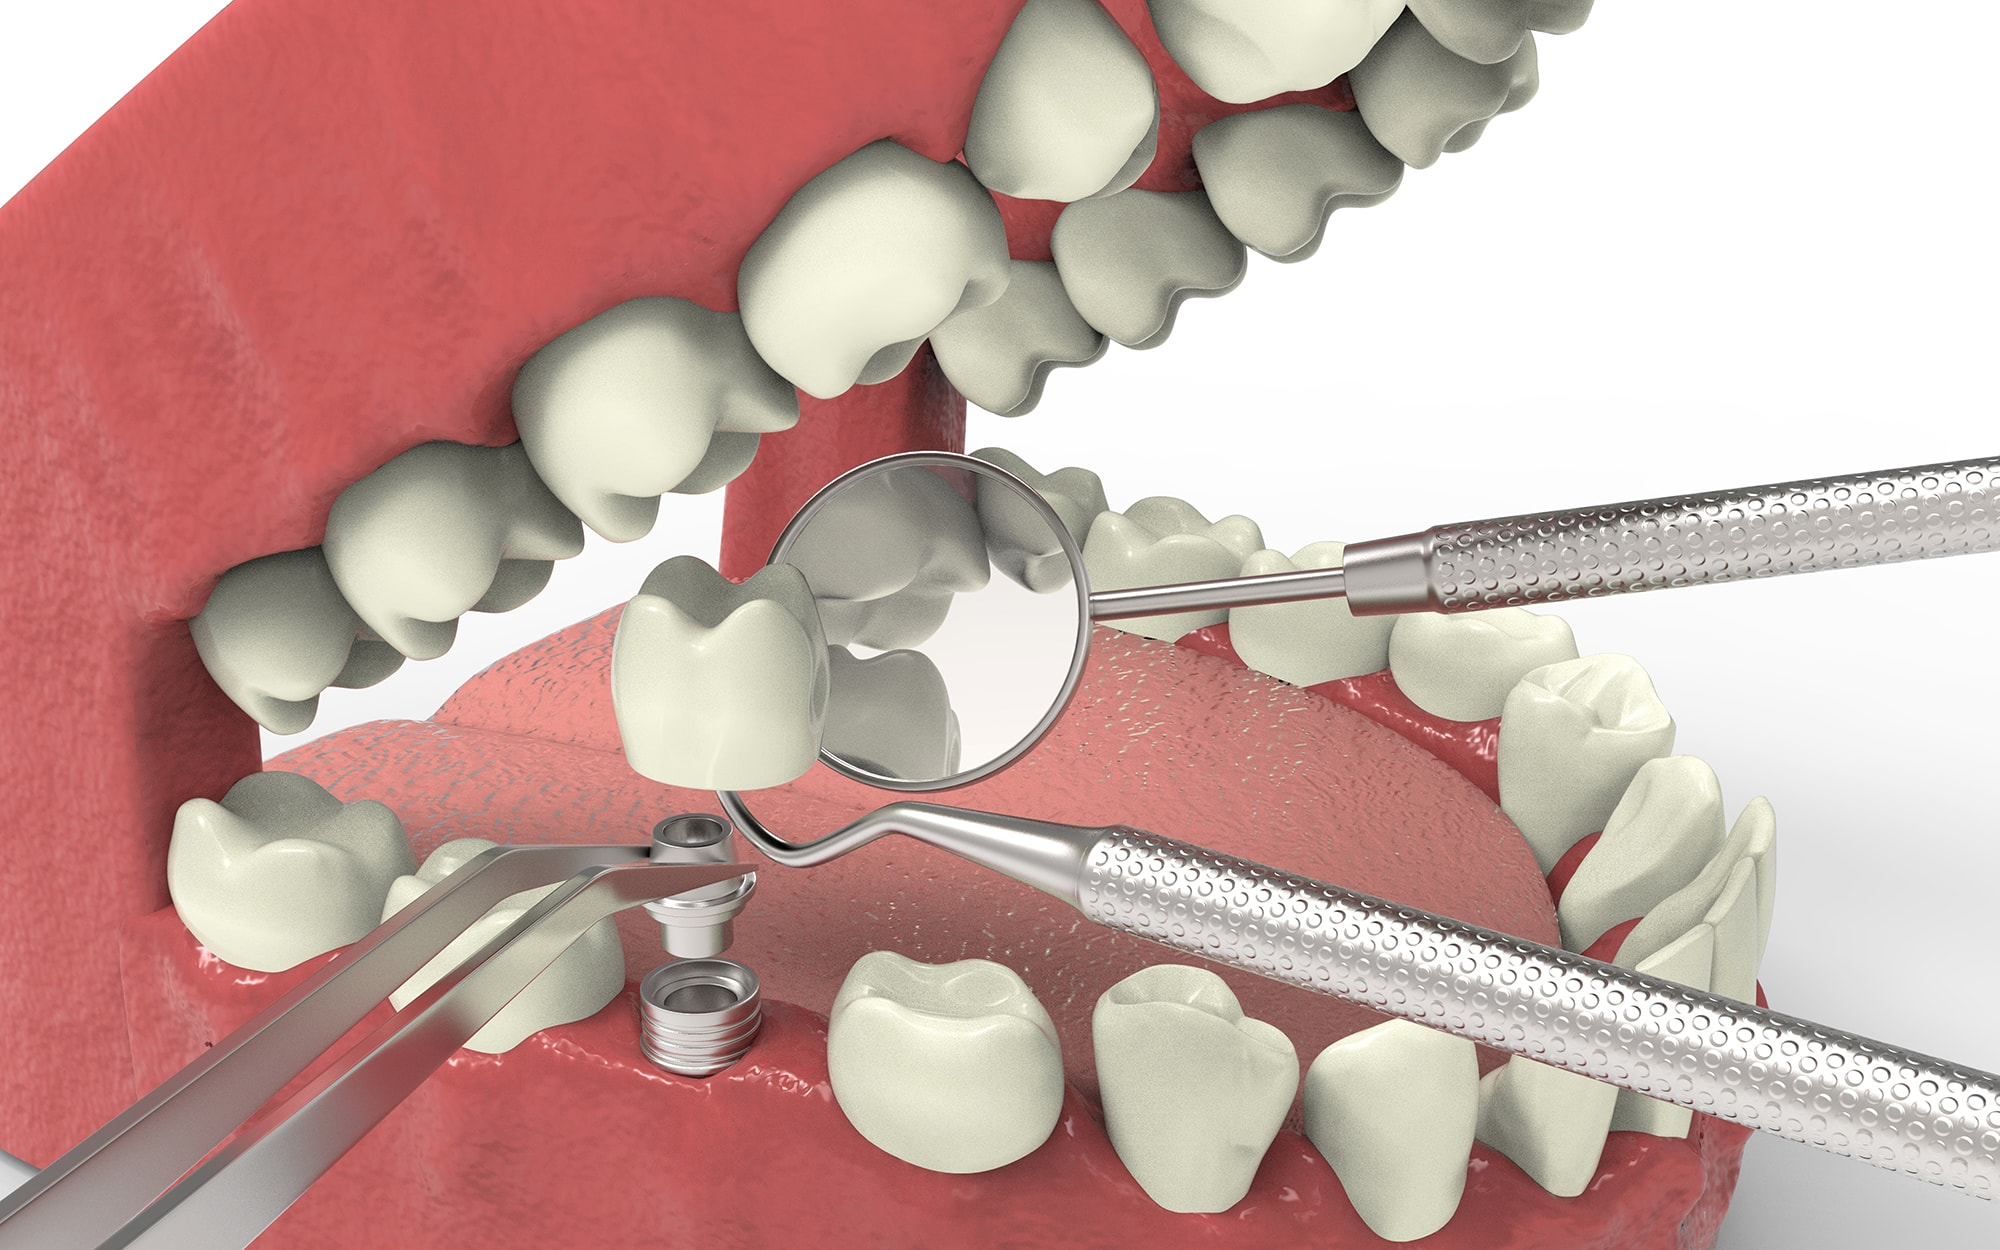 Natural-Looking Dental Implants in Palatine, IL